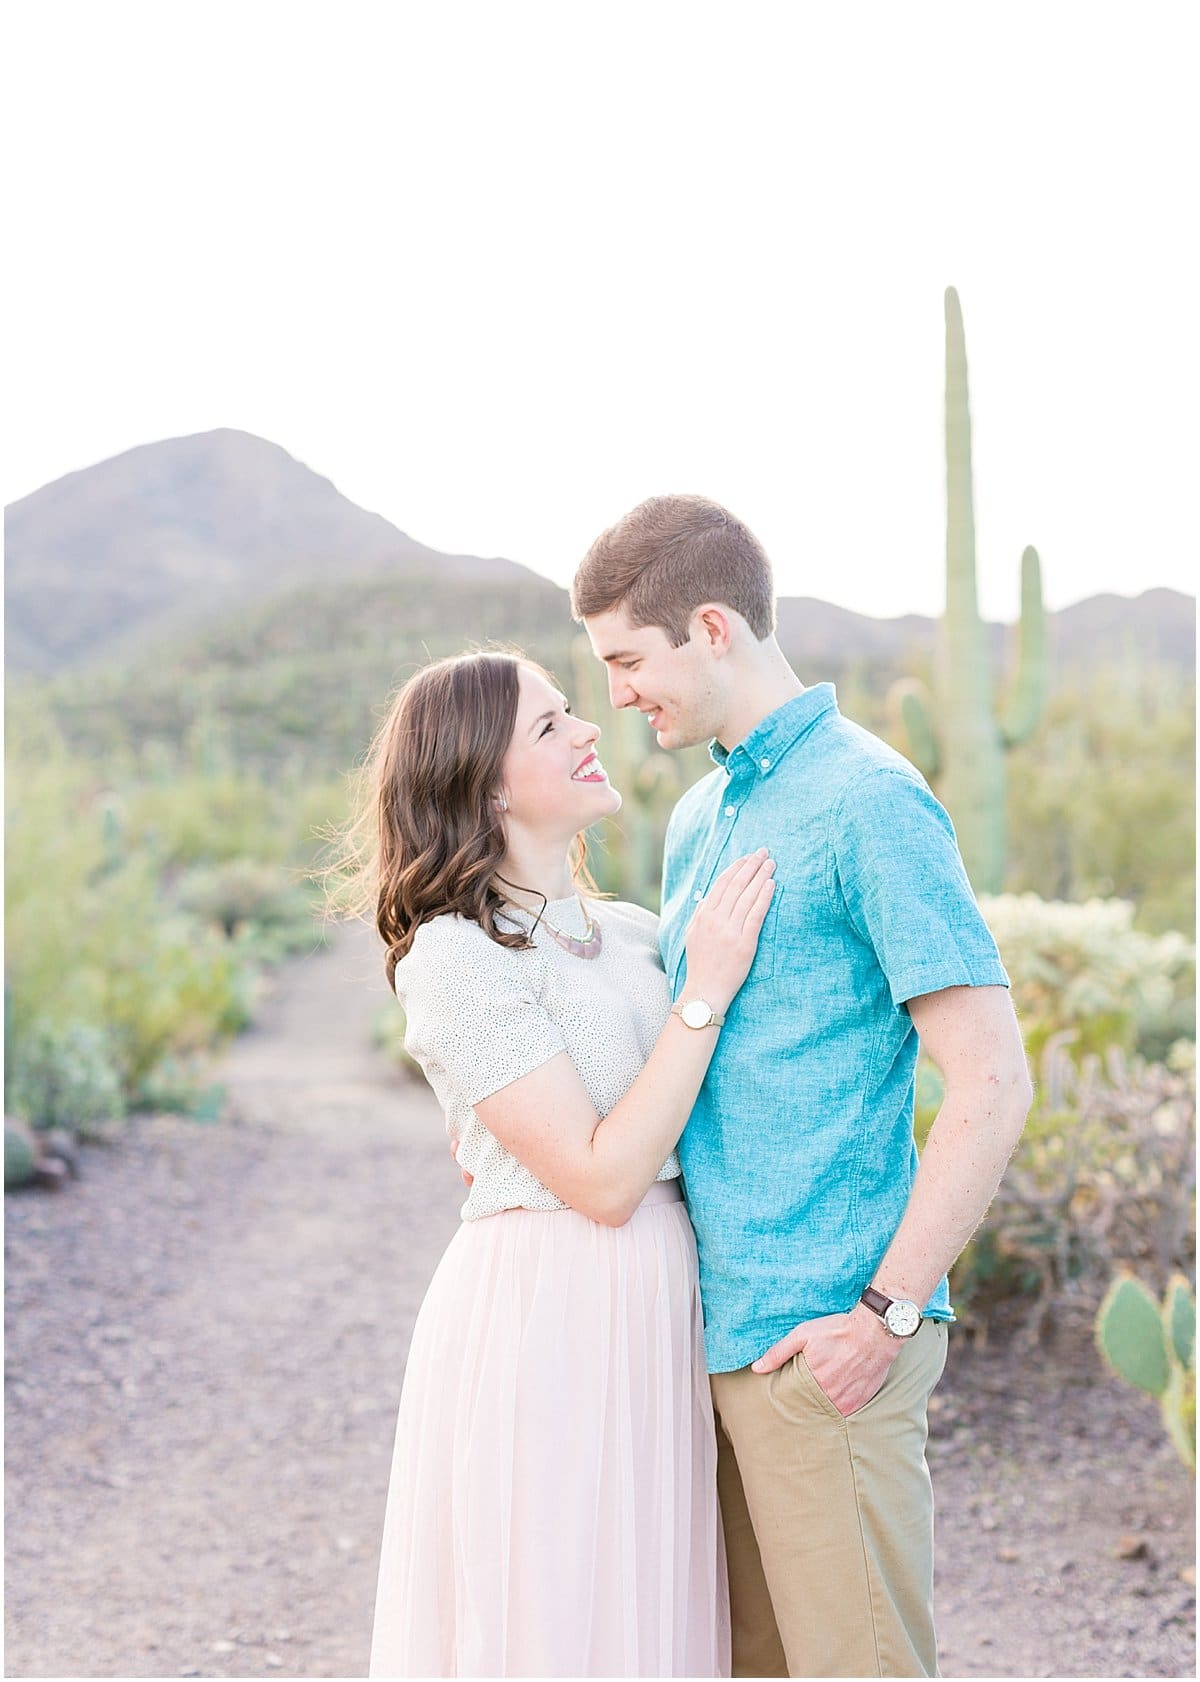 married-arizona-desert-cassidymrphotography_0019